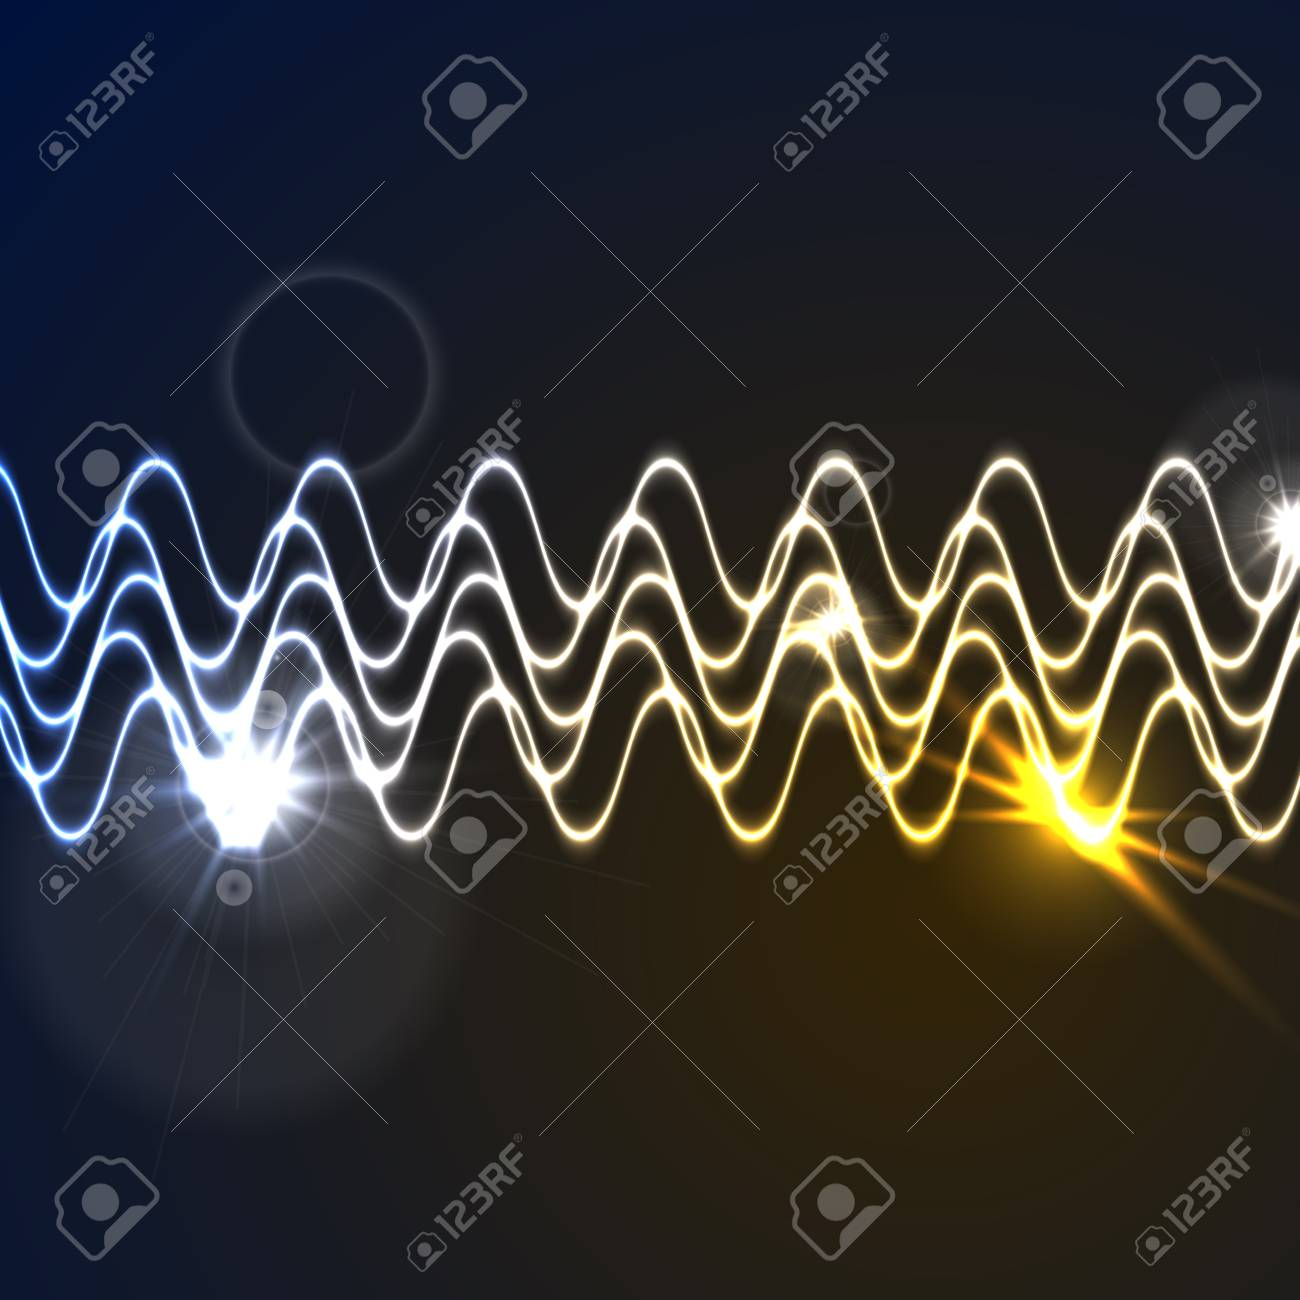 waveform background